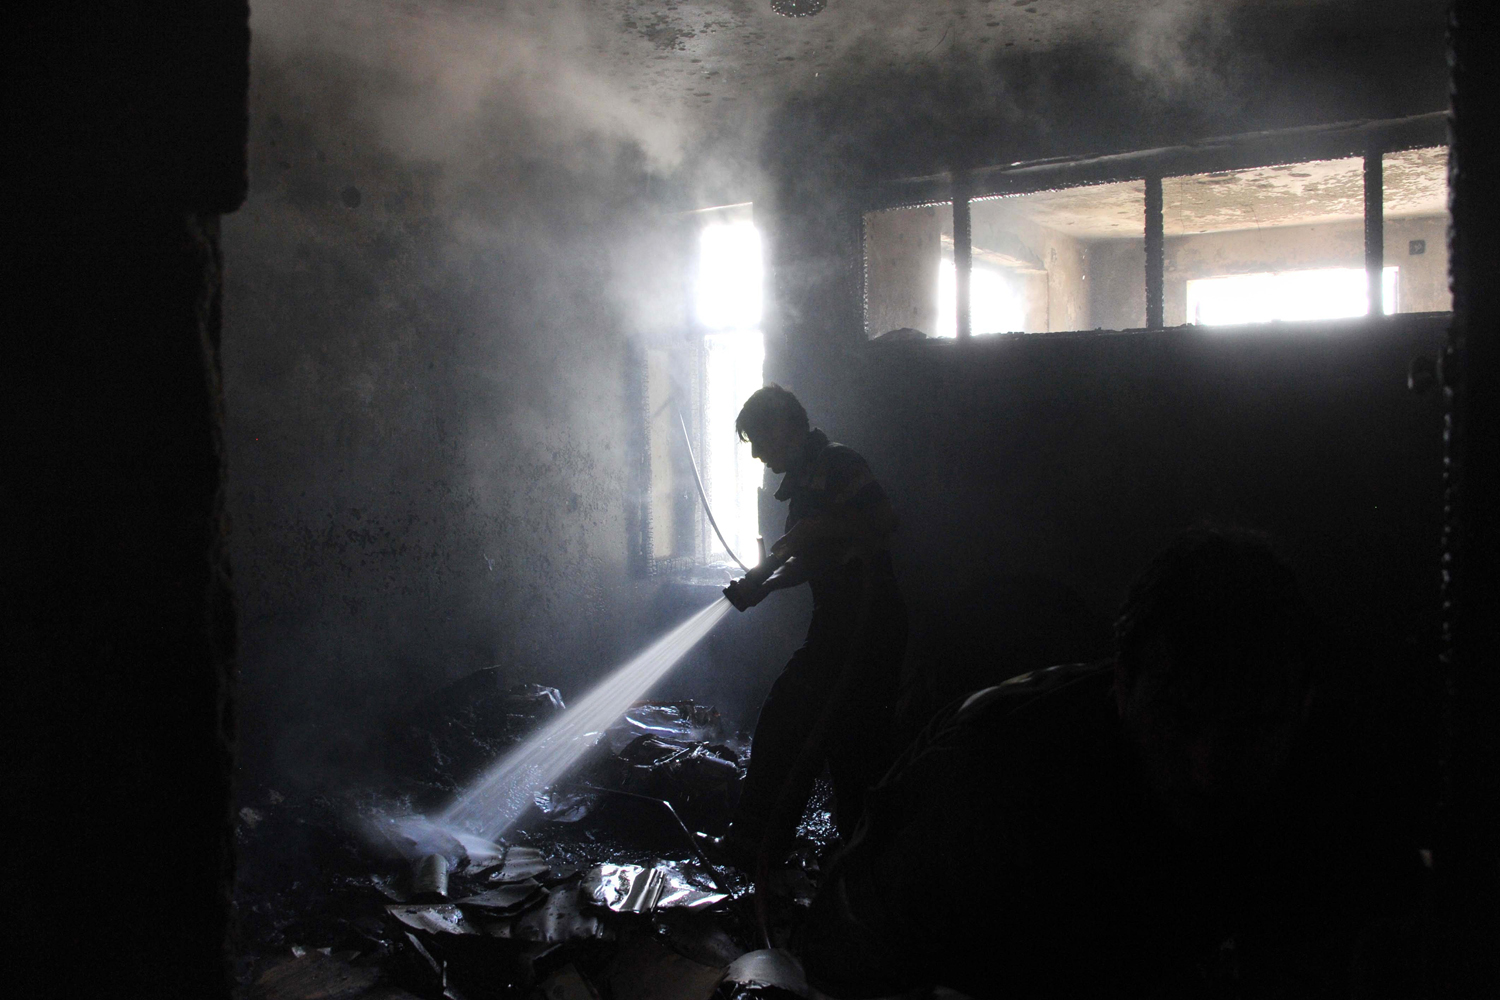 May 12, 2014. An Afghan firefighter extinguishes a fire at the site of a suicide attack in Jalalabad province.